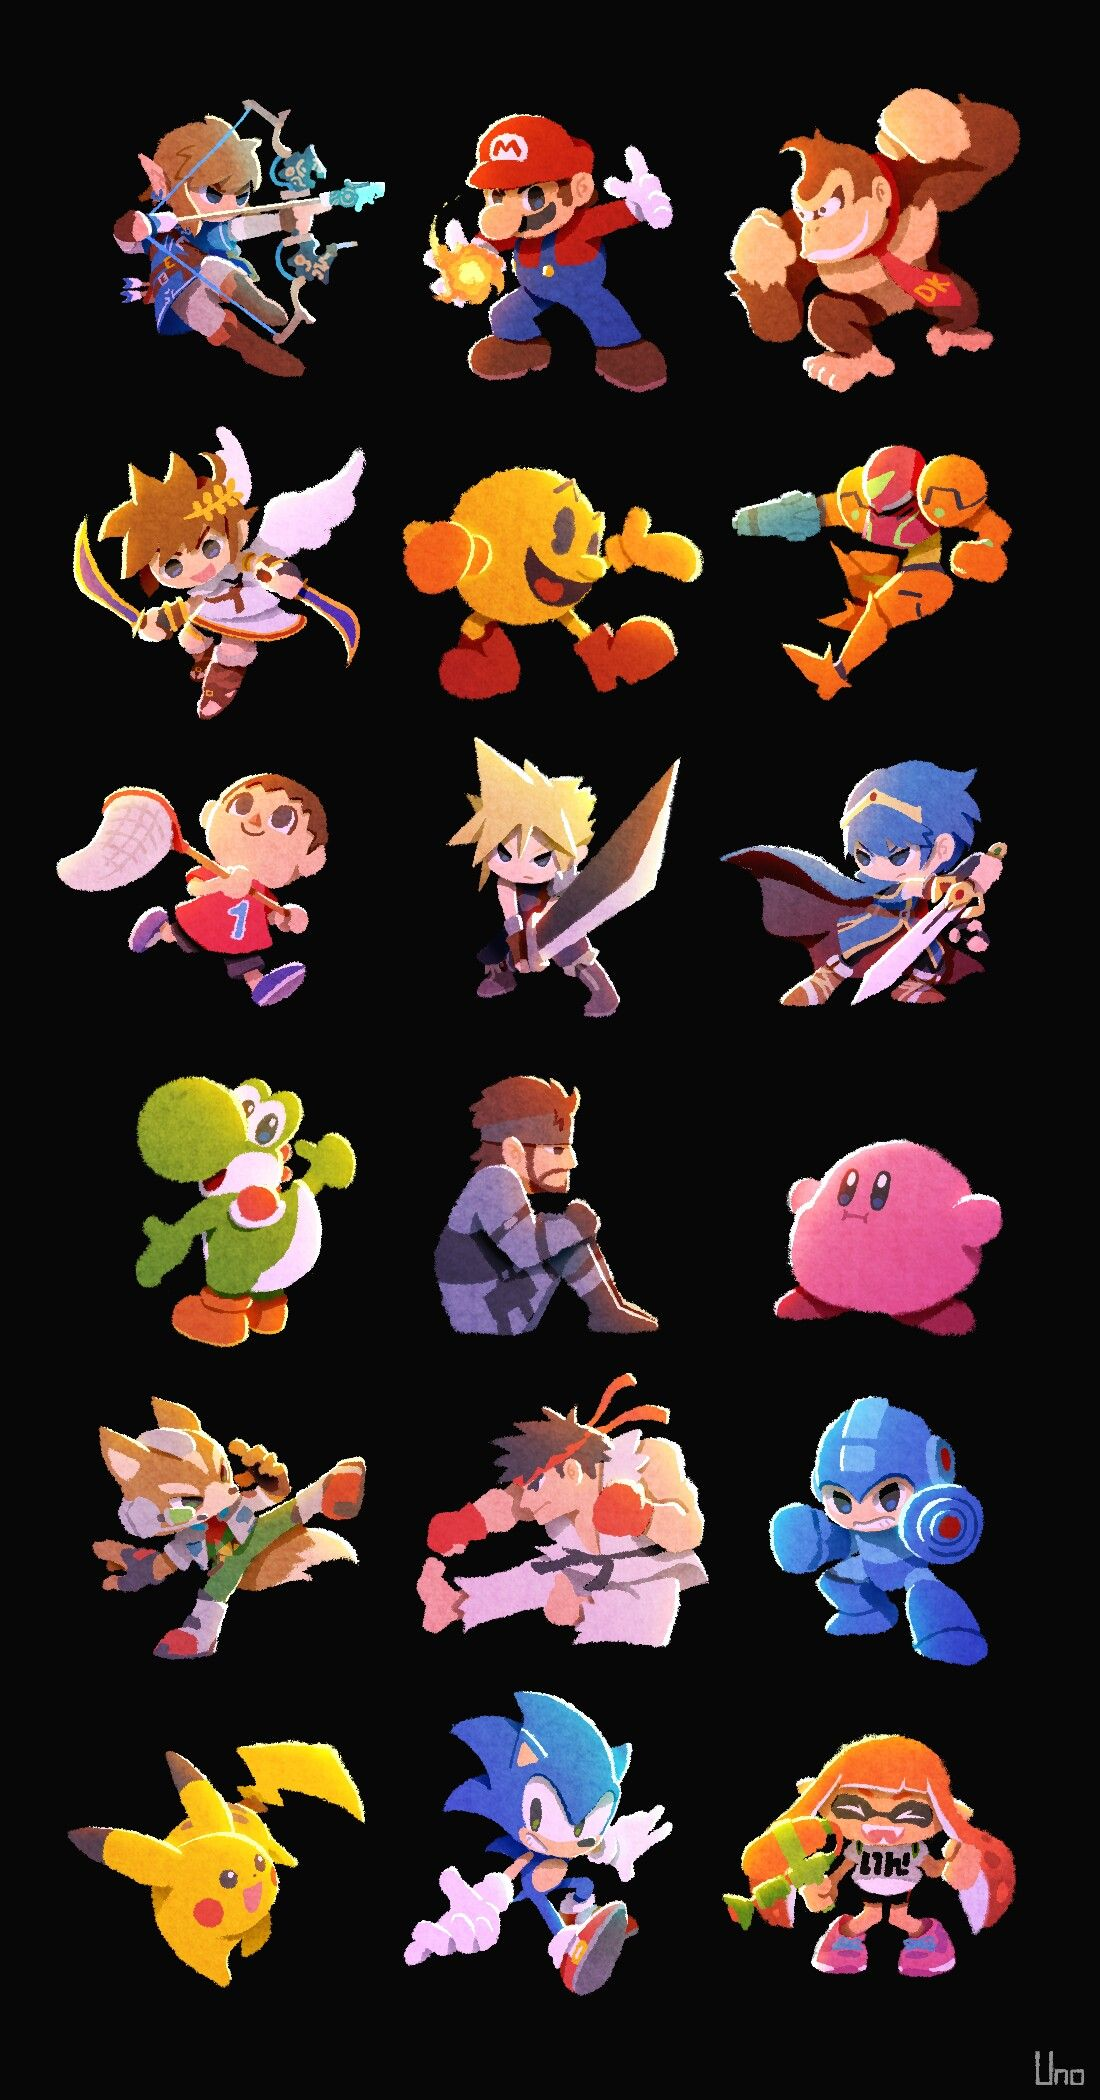 Mega Man Kirby Pikachu And Sonic Are My Favorites Mario Too I